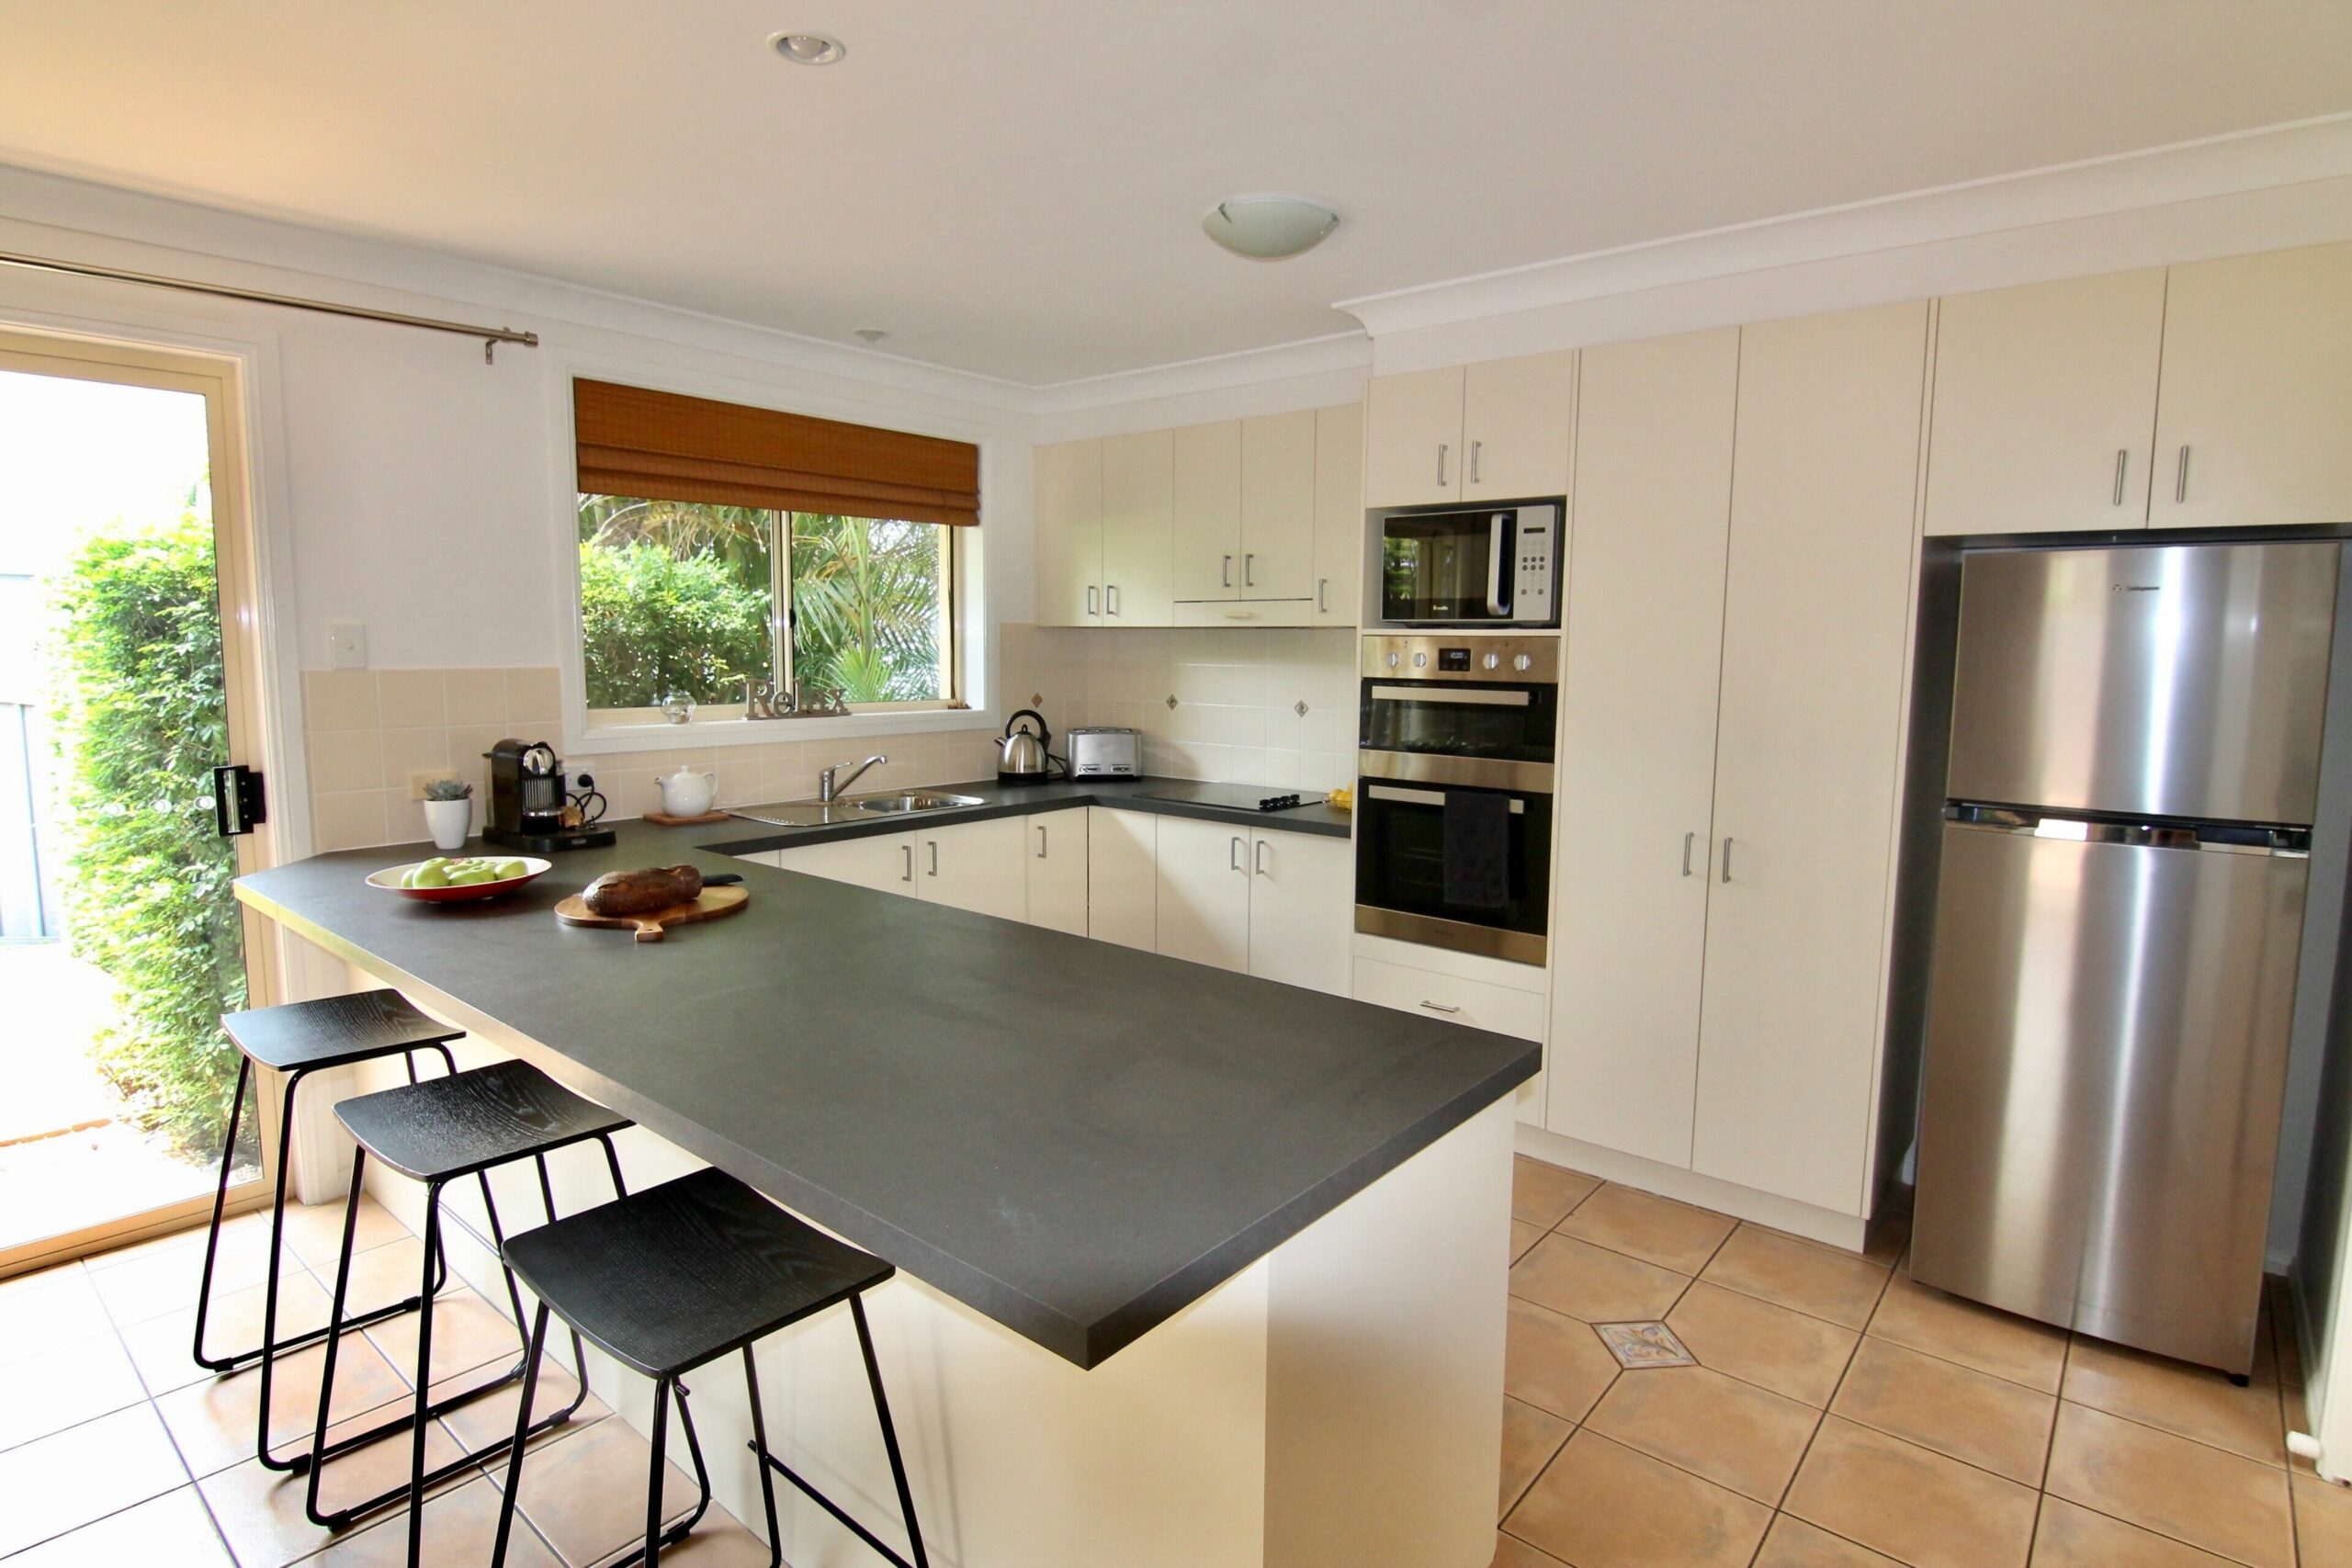 Diggers Beach Hideaway, Coffs Harbour - New Listing! Prime beachside location